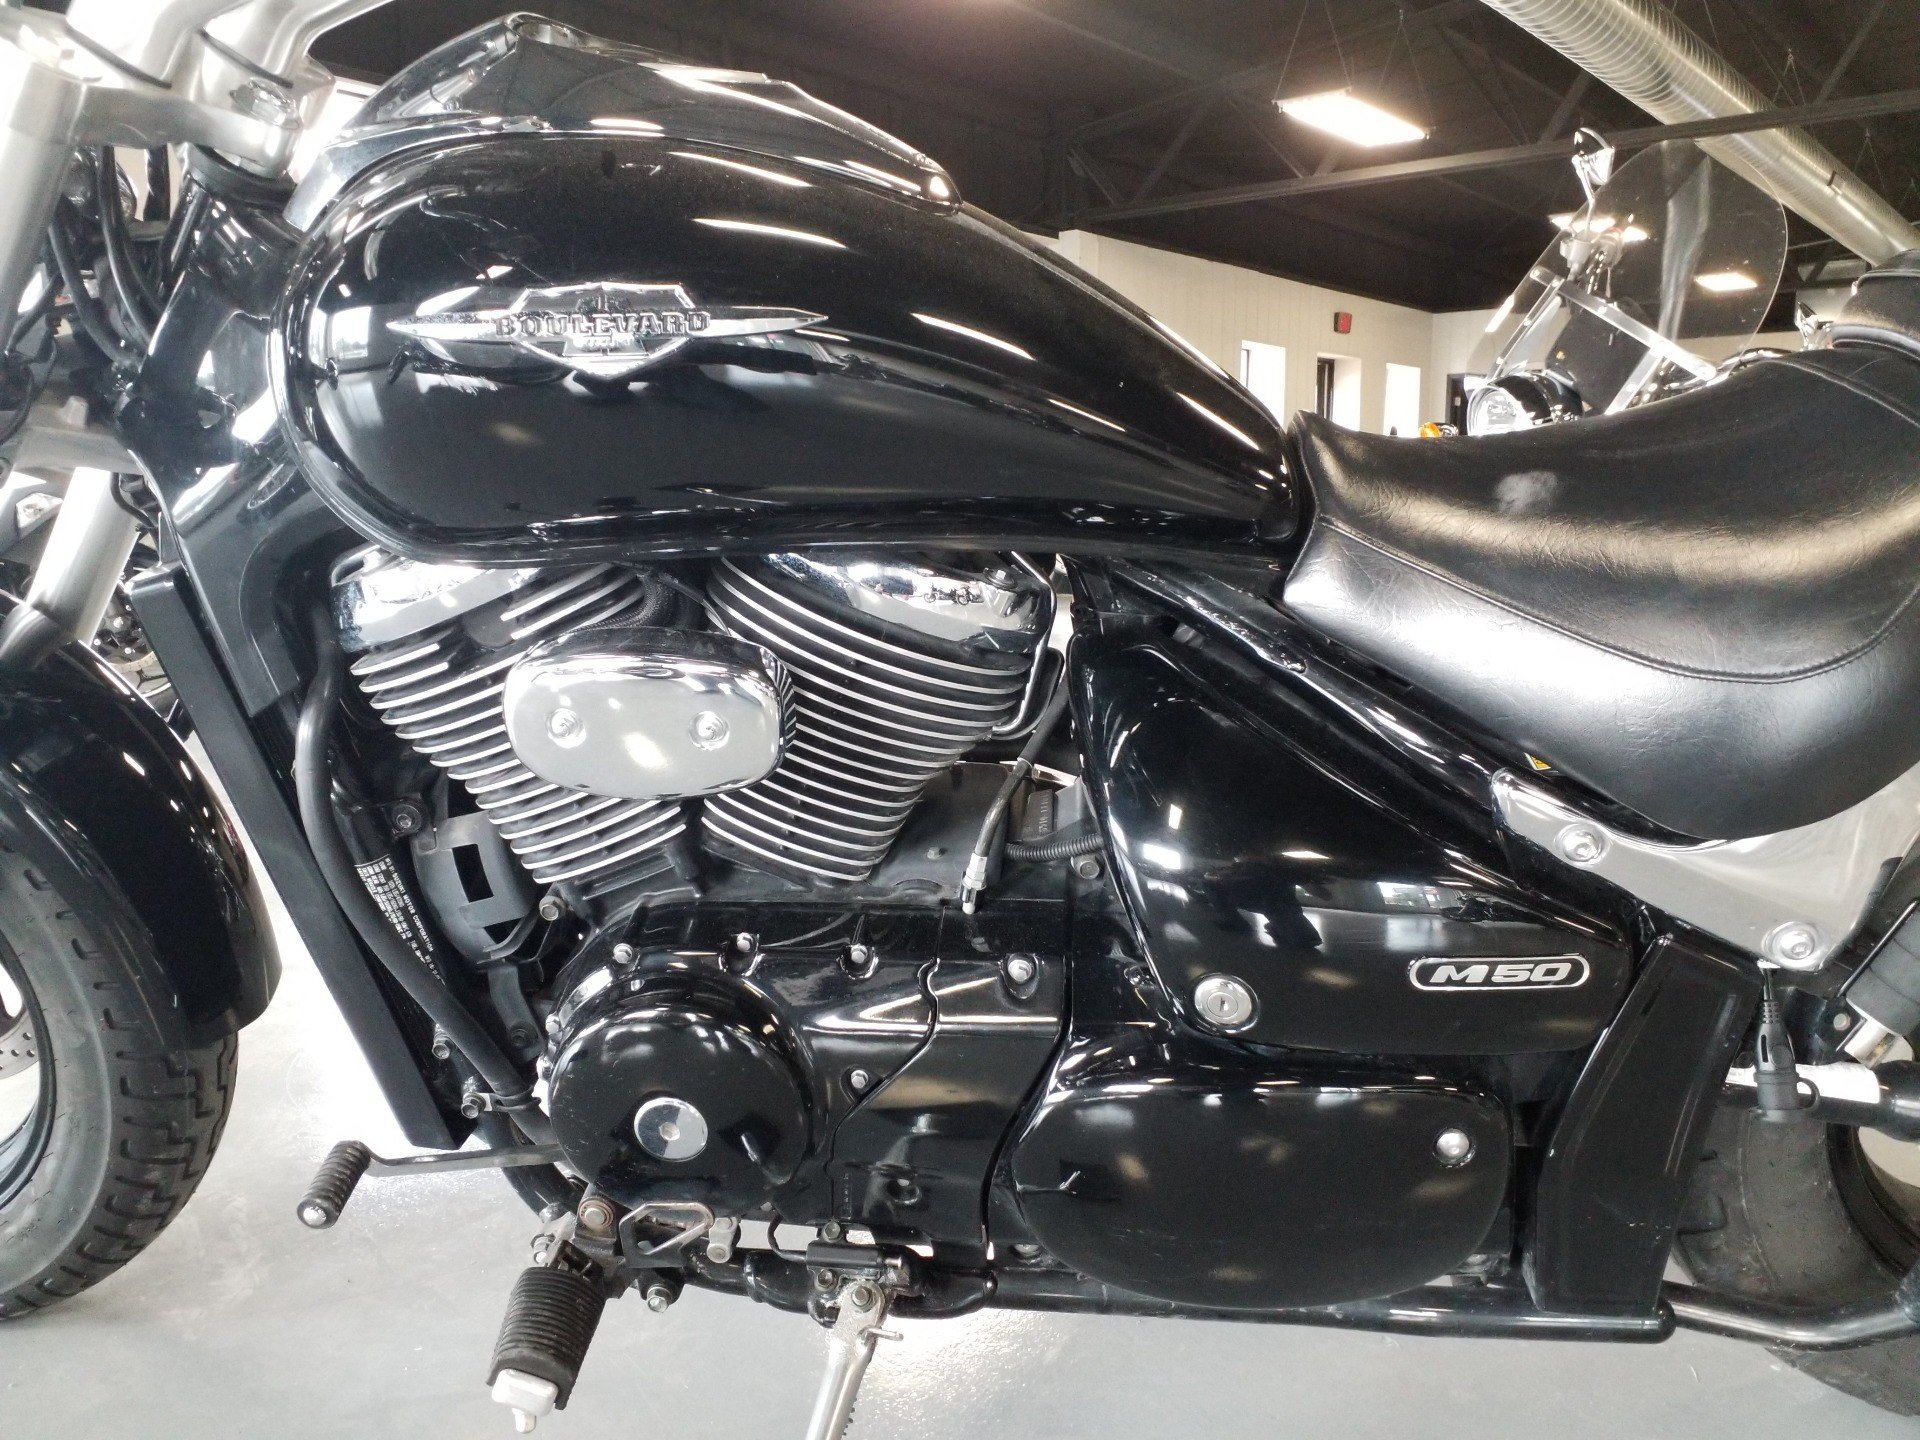 2005 Suzuki Boulevard M50 Black in Cedar Rapids, Iowa - Photo 5